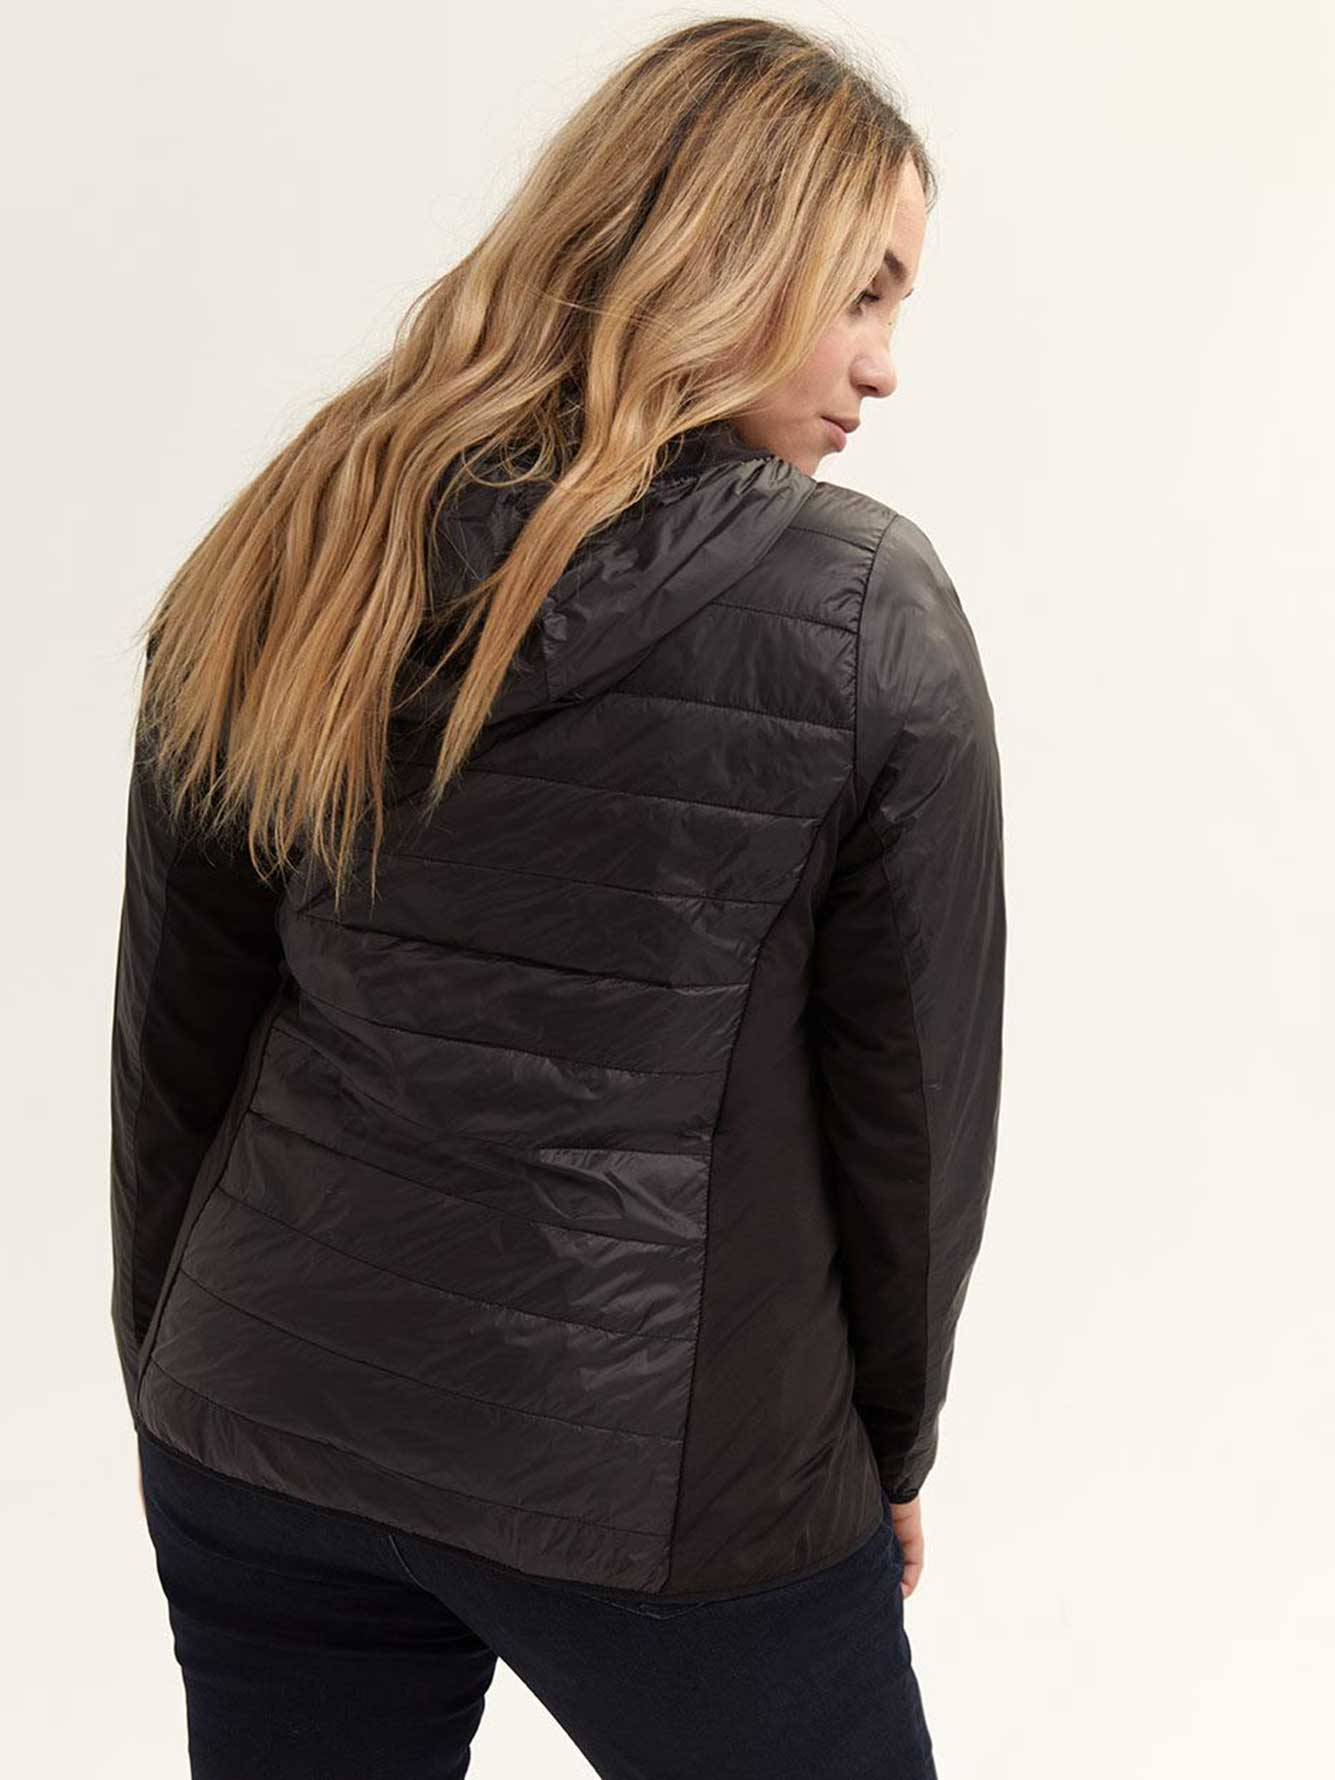 Mix Media Packable Travel Jacket - Nola